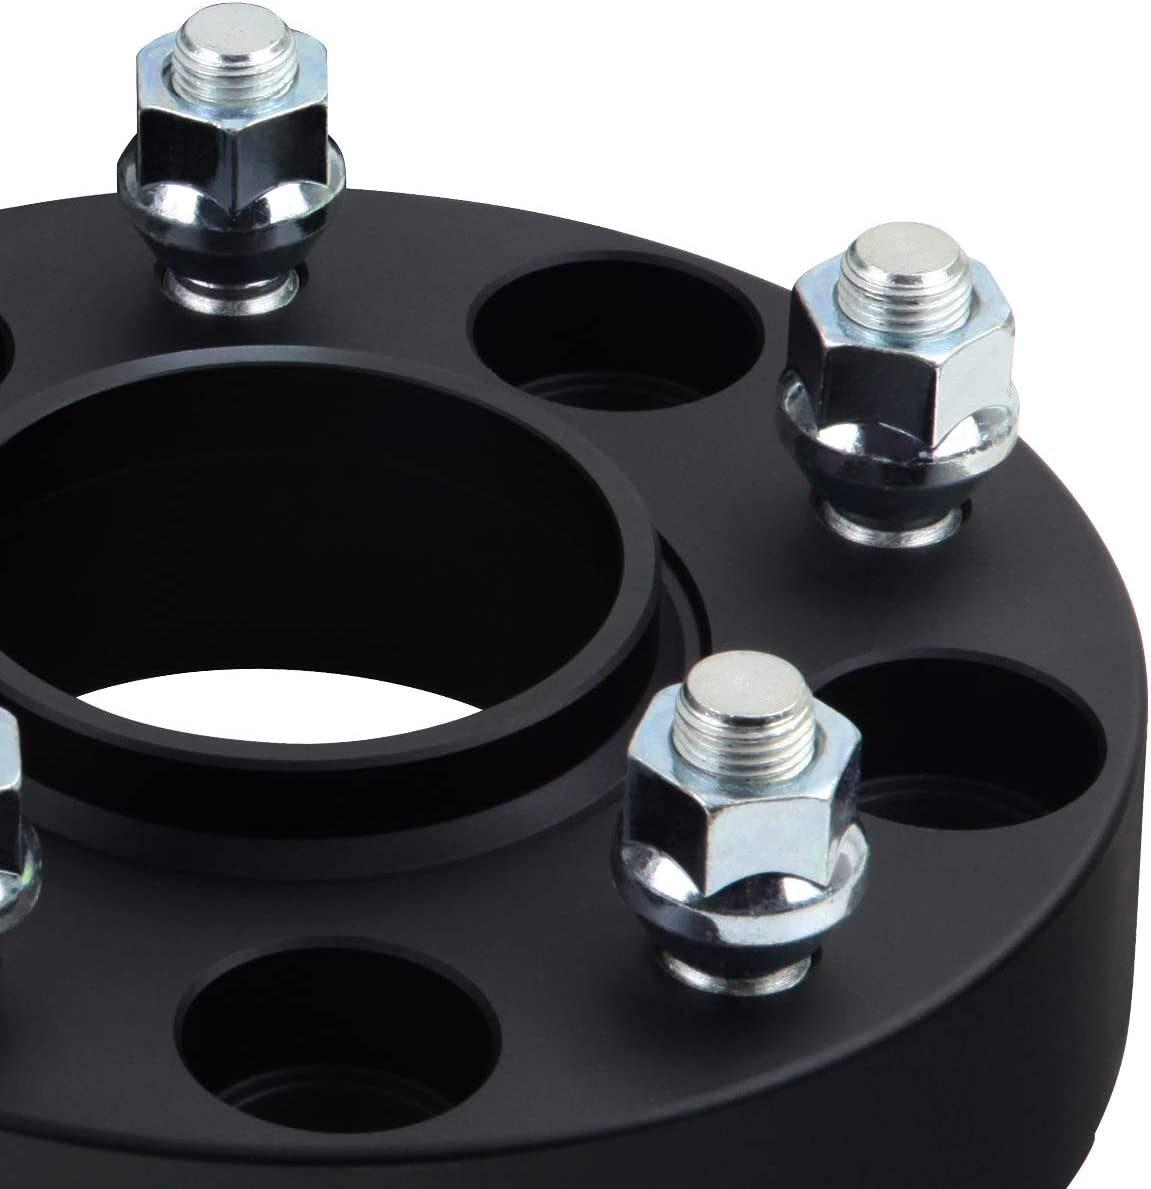 Supreme Suspensions 2pc 1.25 Hub Centric Wheel Spacers for 2007-2018 Jeep Wrangler JK 2WD 4WD 5x5 5x127mm Black 71.5mm Center Bore with 1//2x20 Studs